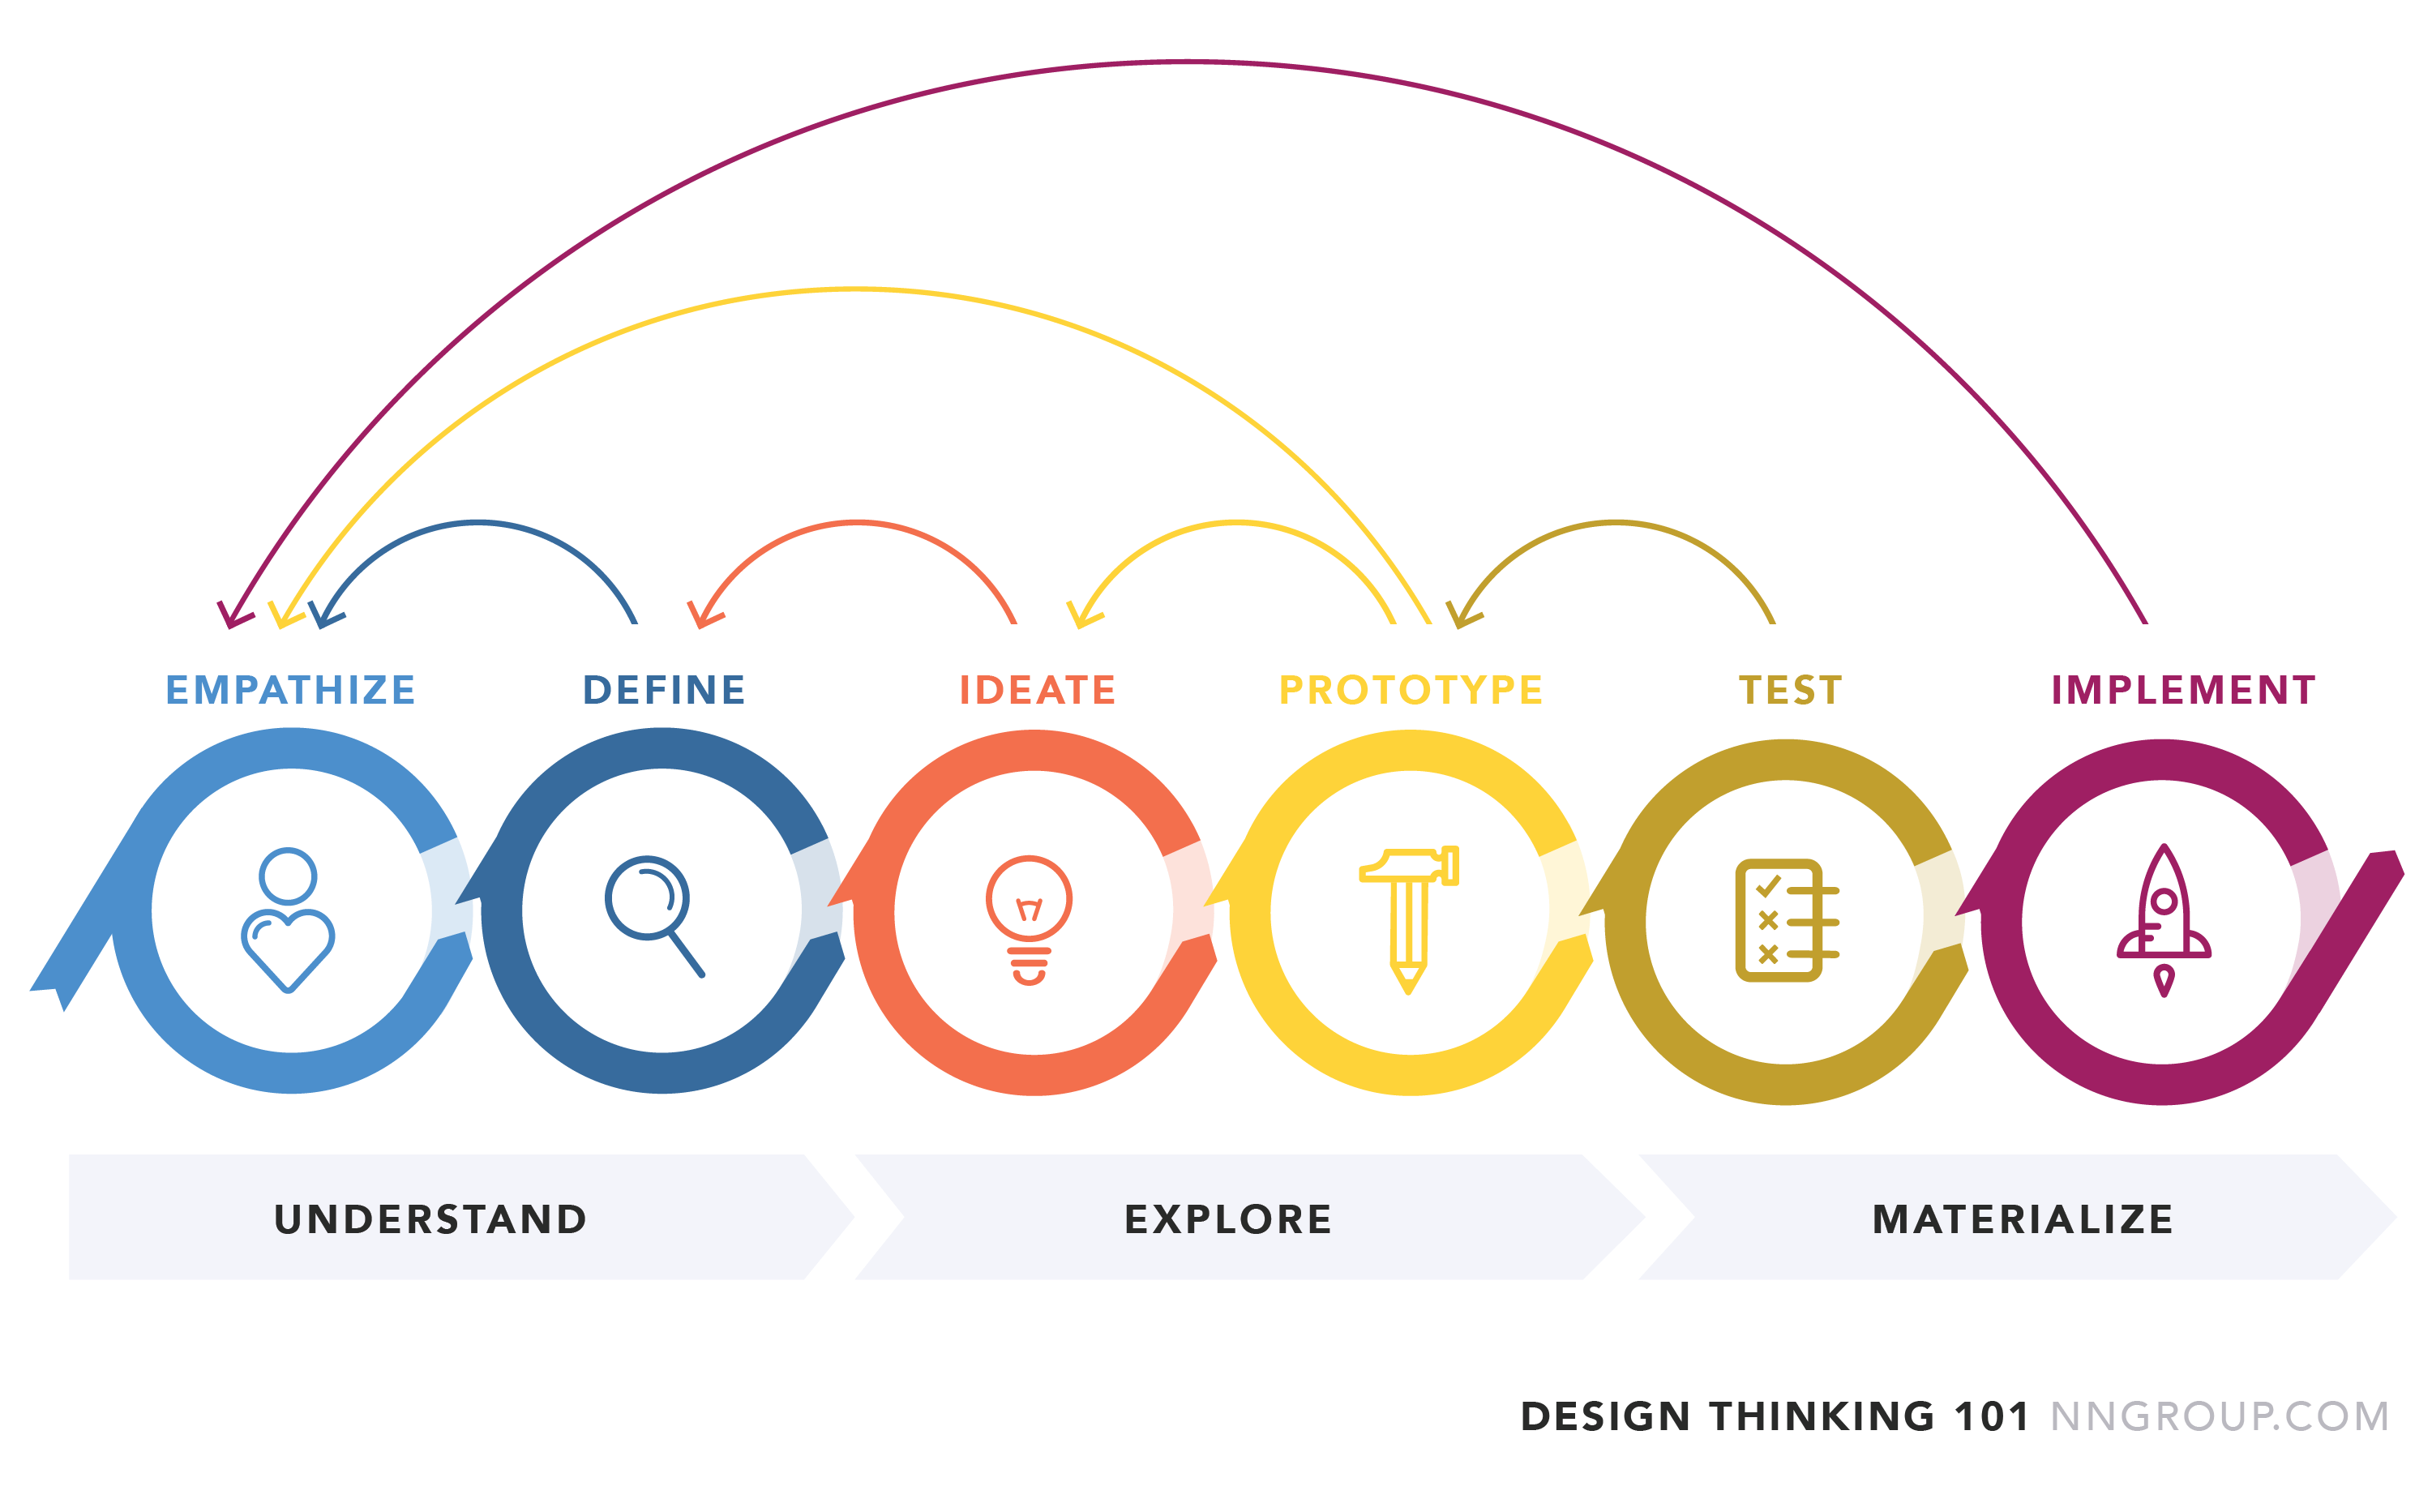 What Is Design Thinking And What Are The 5 Stages